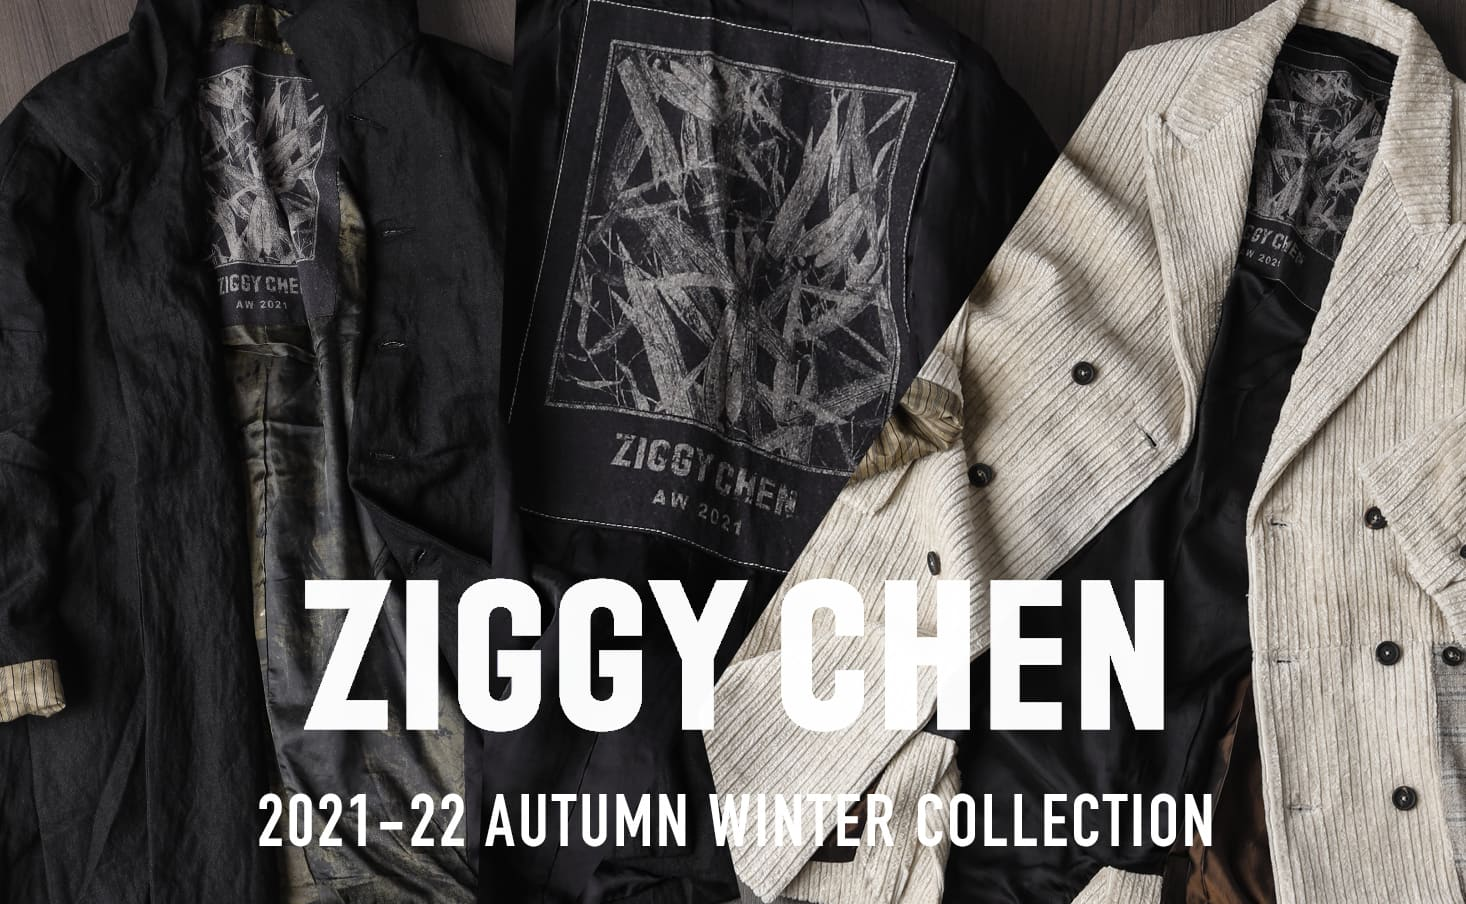 ZIGGY CHEN 2021-22 AW Collection